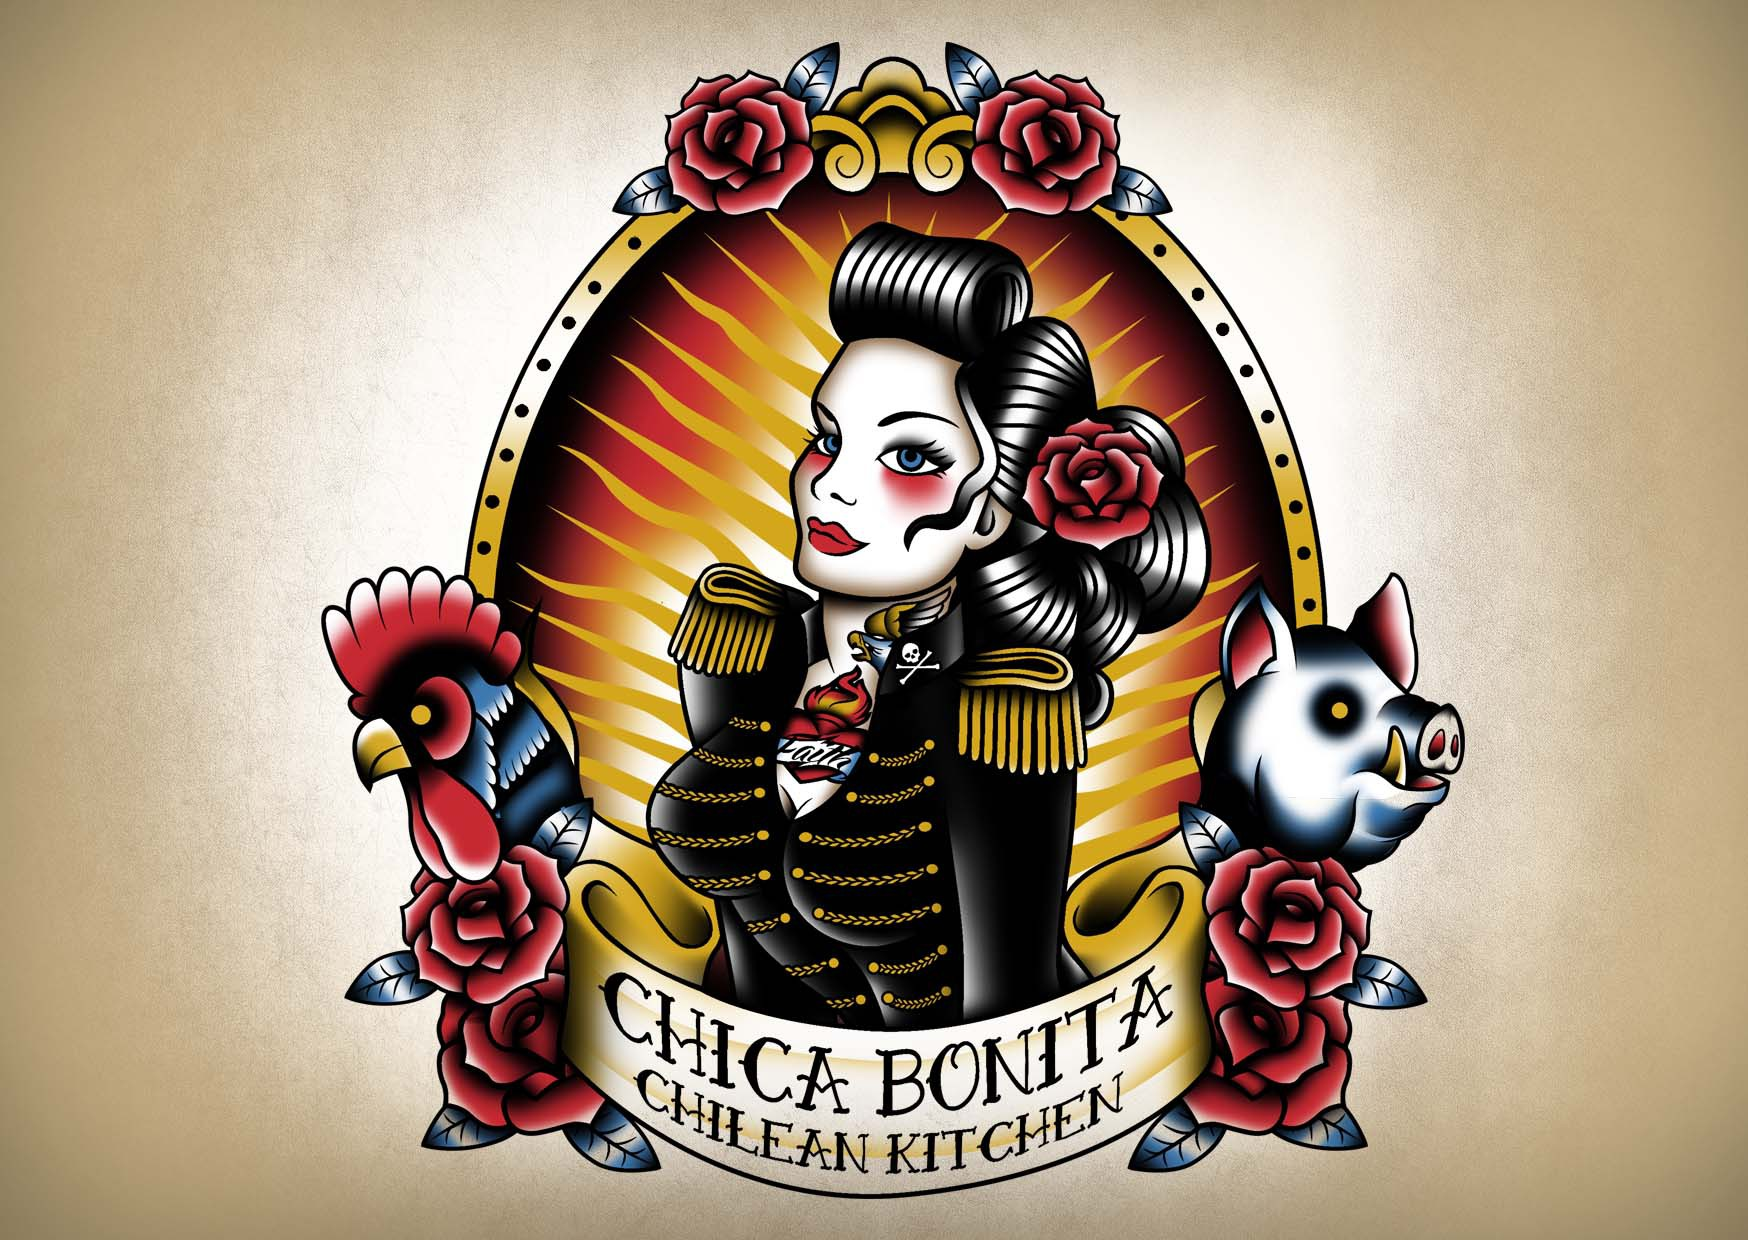 Create a character logo for a Chilean pop-up & food truck in a pin-up/ tattoo style